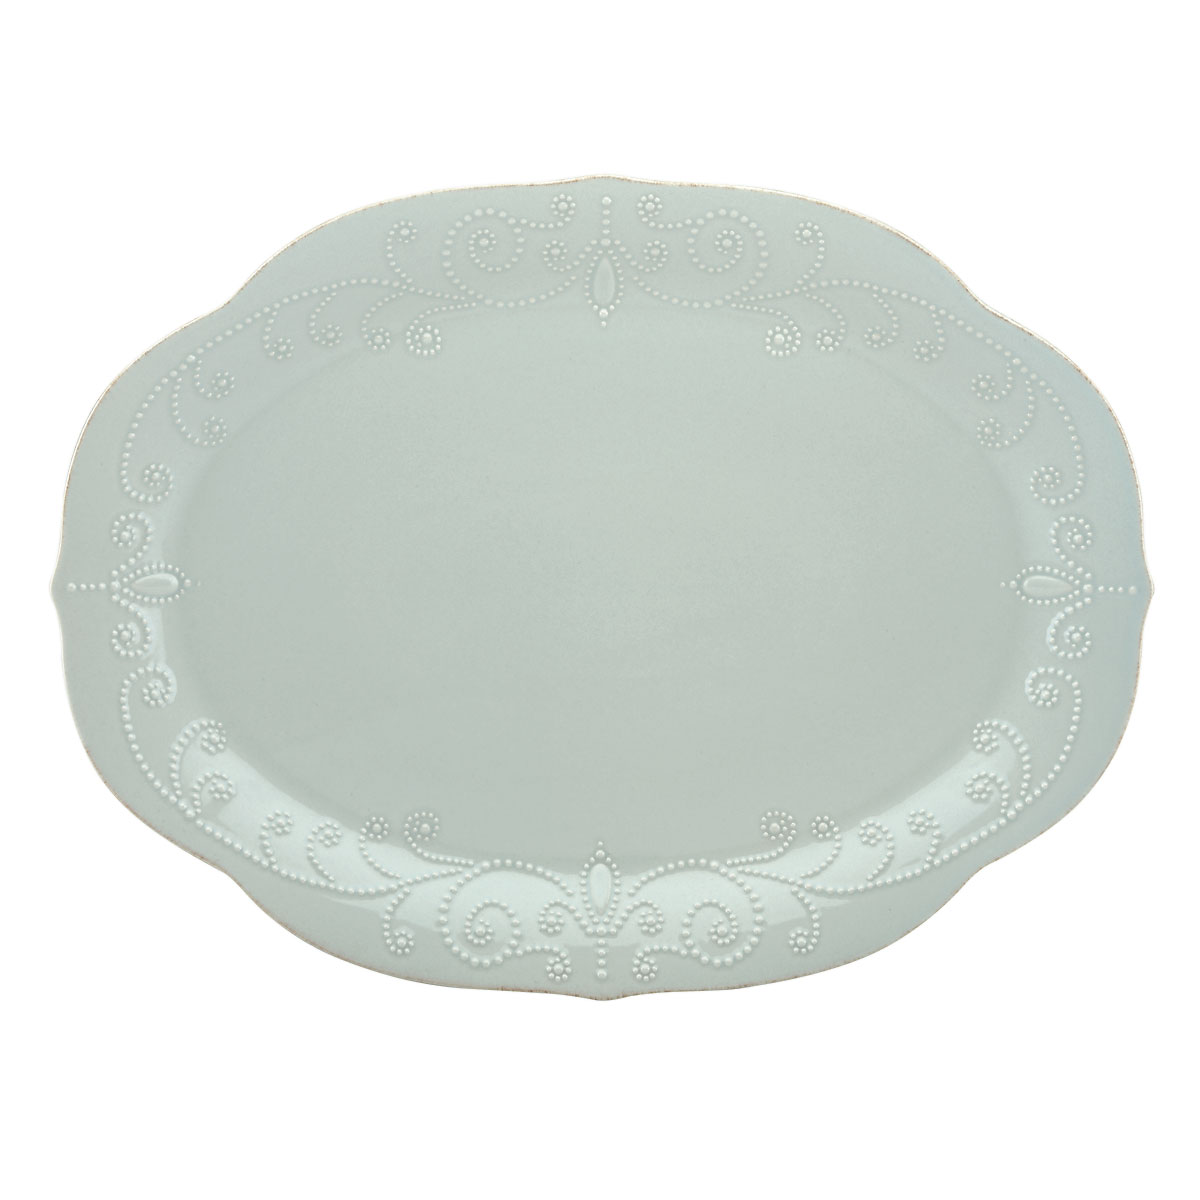 Lenox French Perle Blue Dinnerware Oval Platter 16""